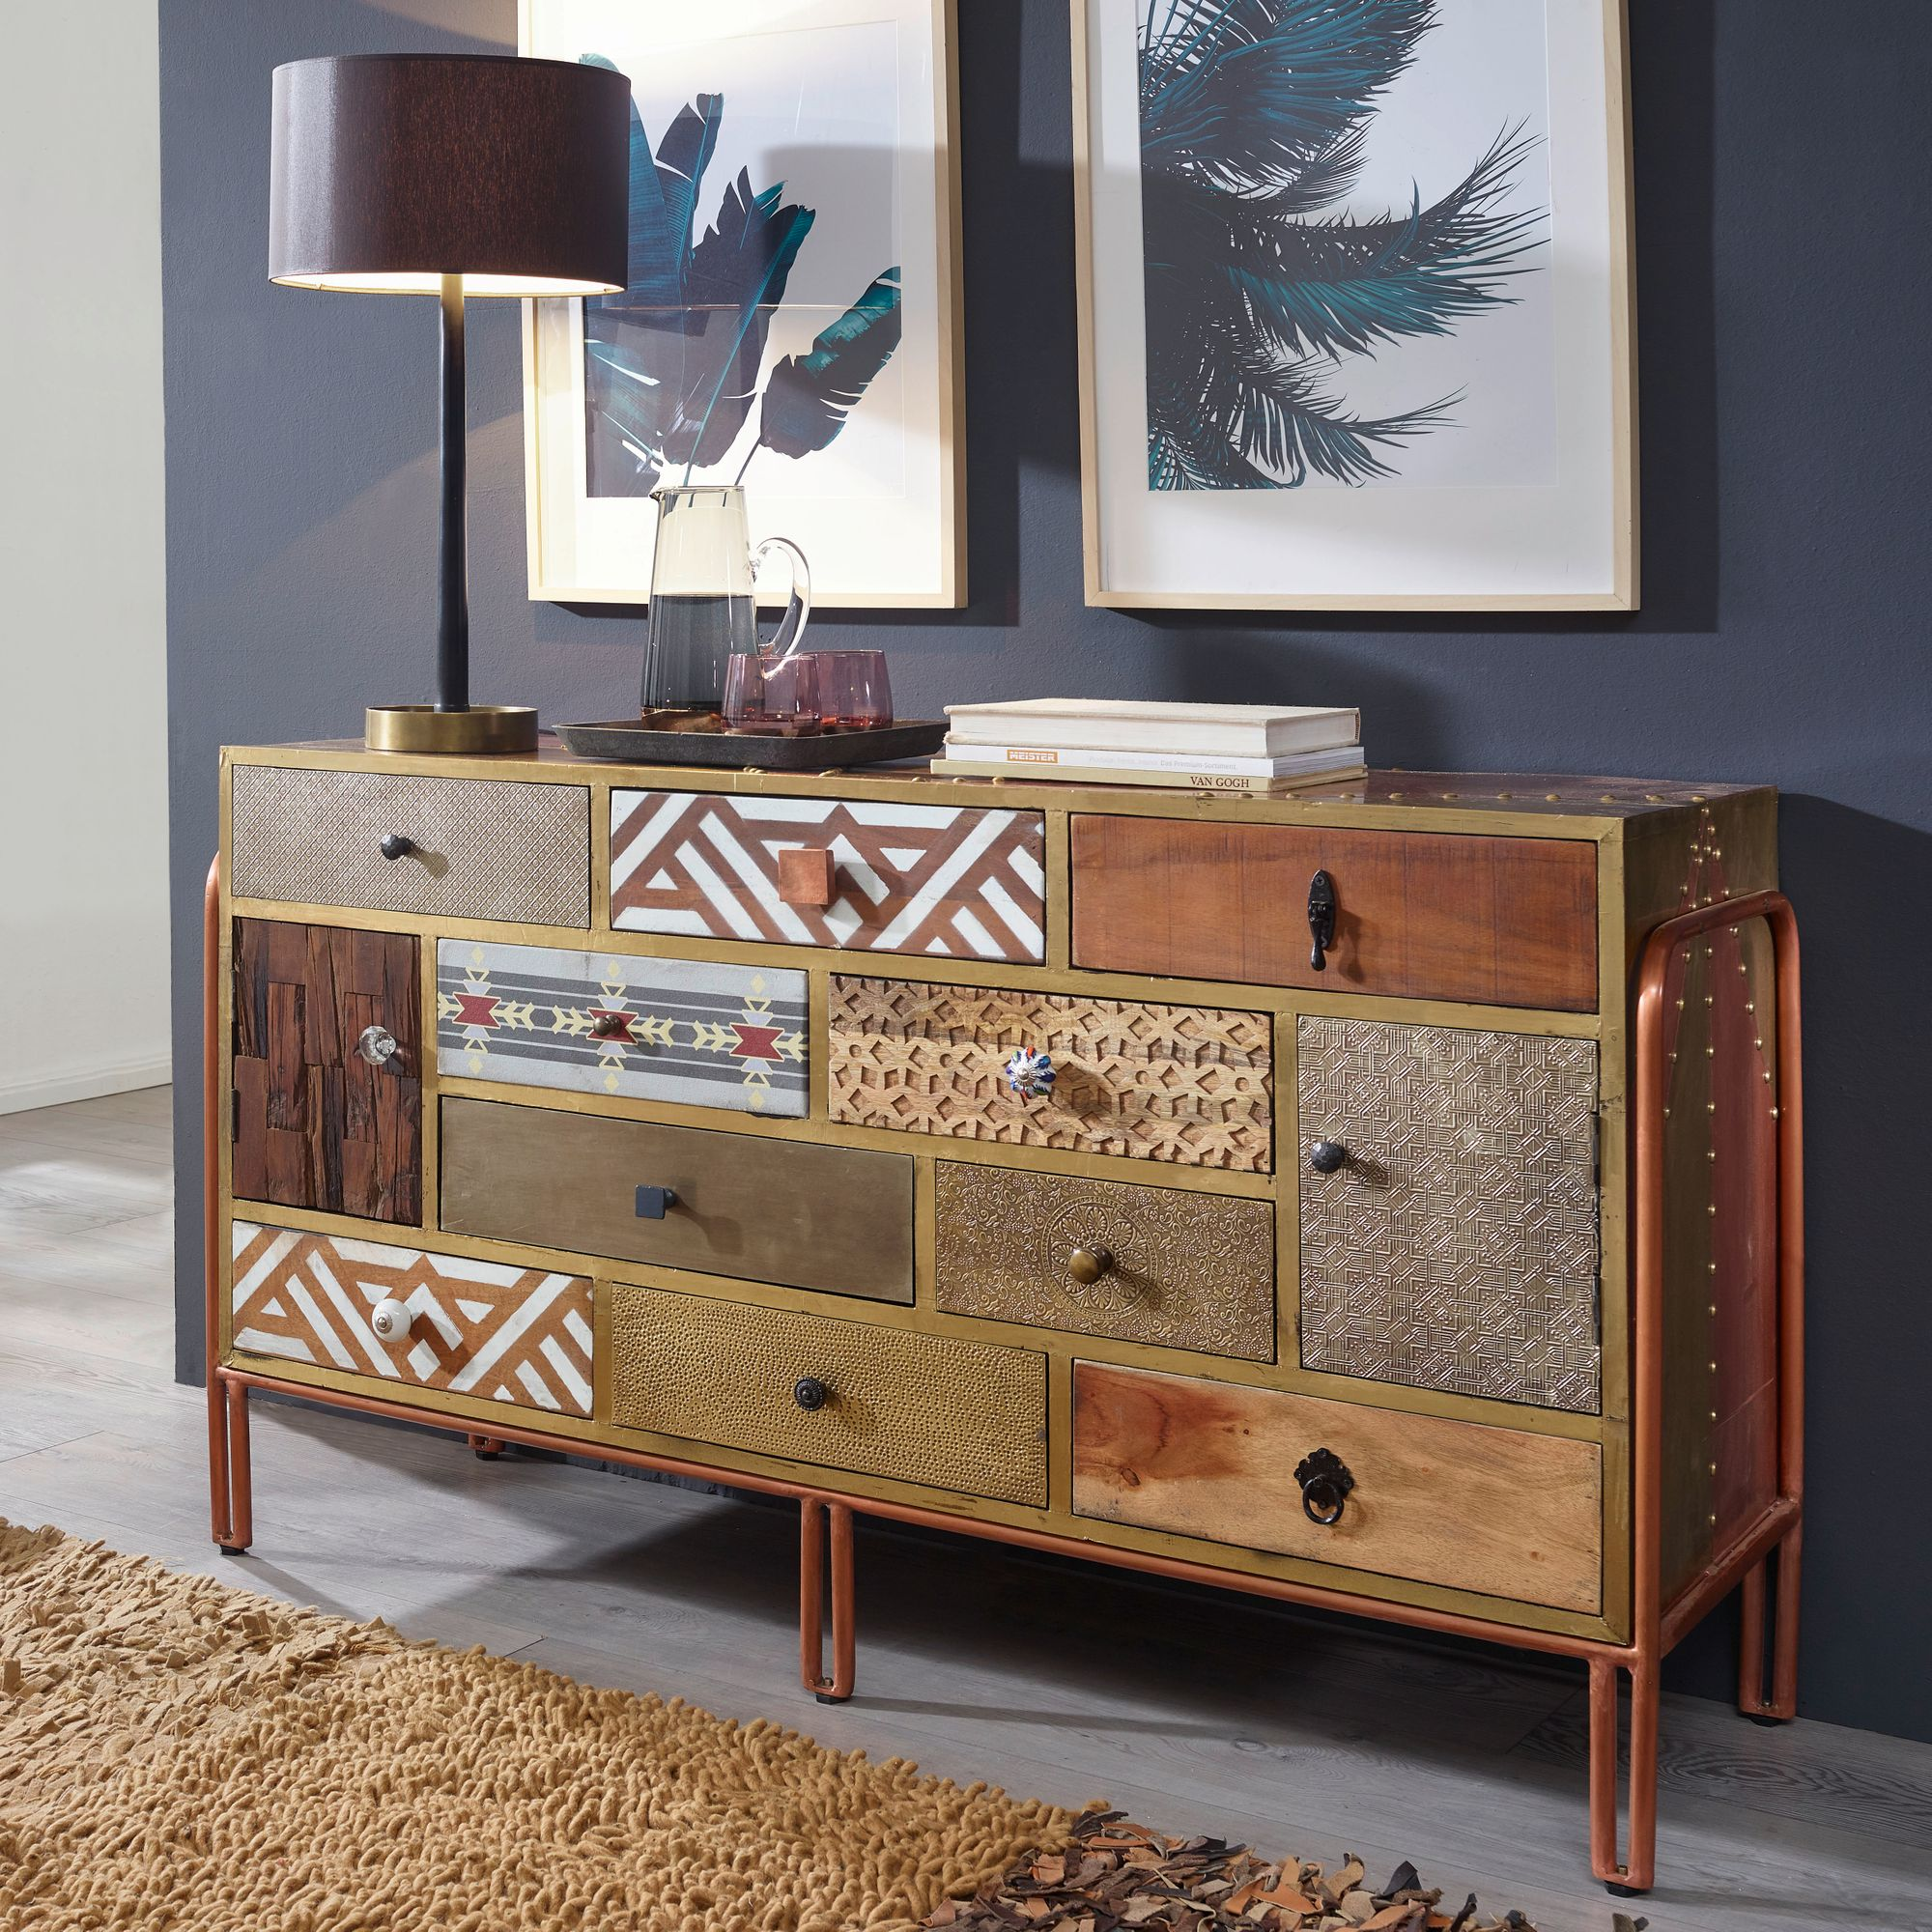 WOHNLING Sideboard FITTED 140x45x80 cm Metall Retro Anrichte Bunt ...